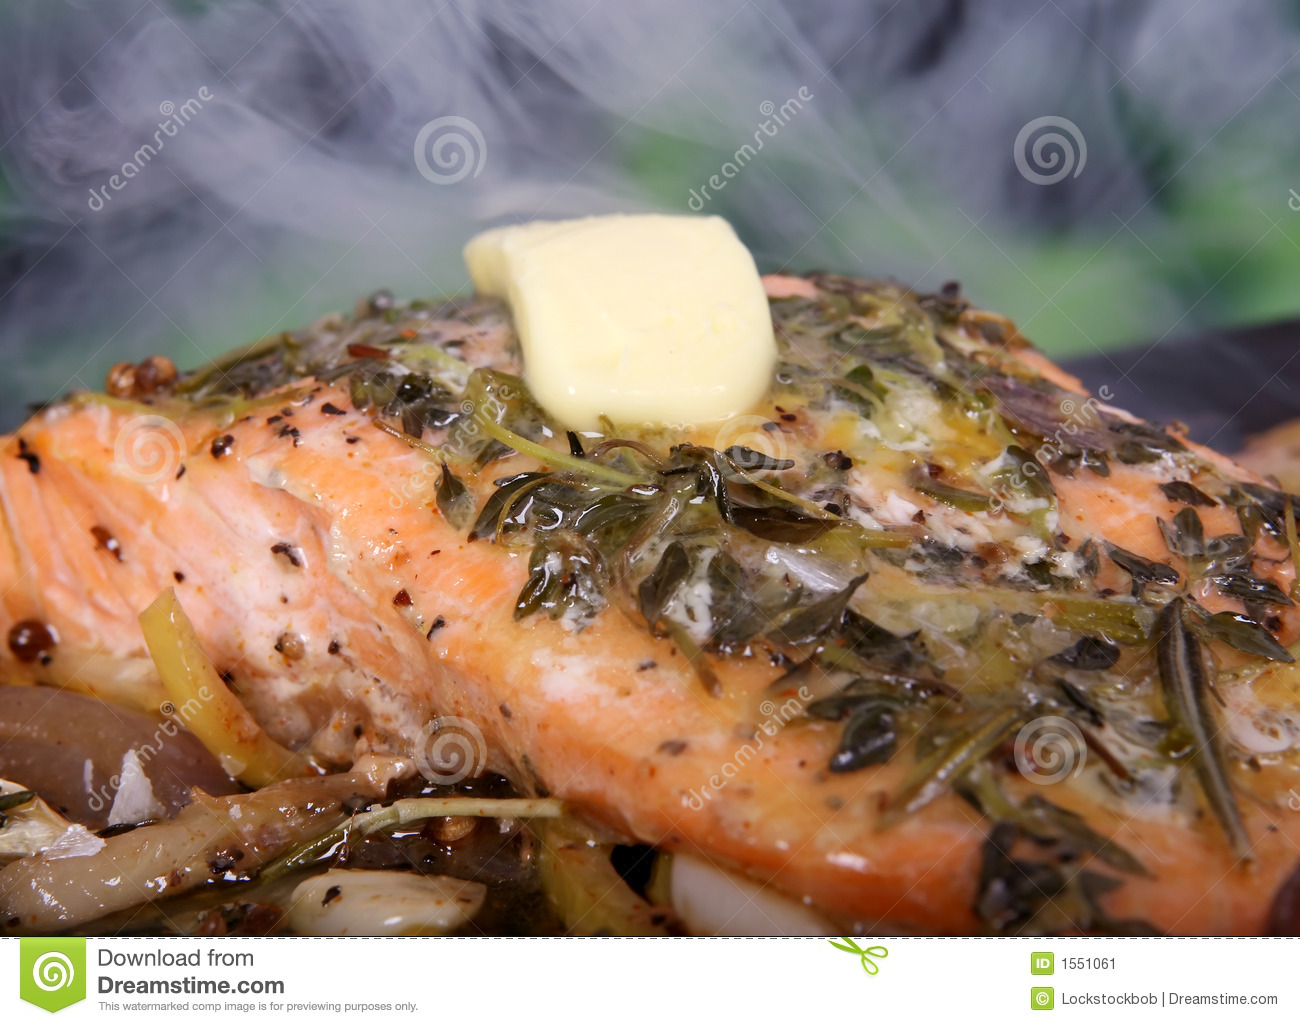 Summer food rose colored fish steak in a wine marinade for Marinade for fish